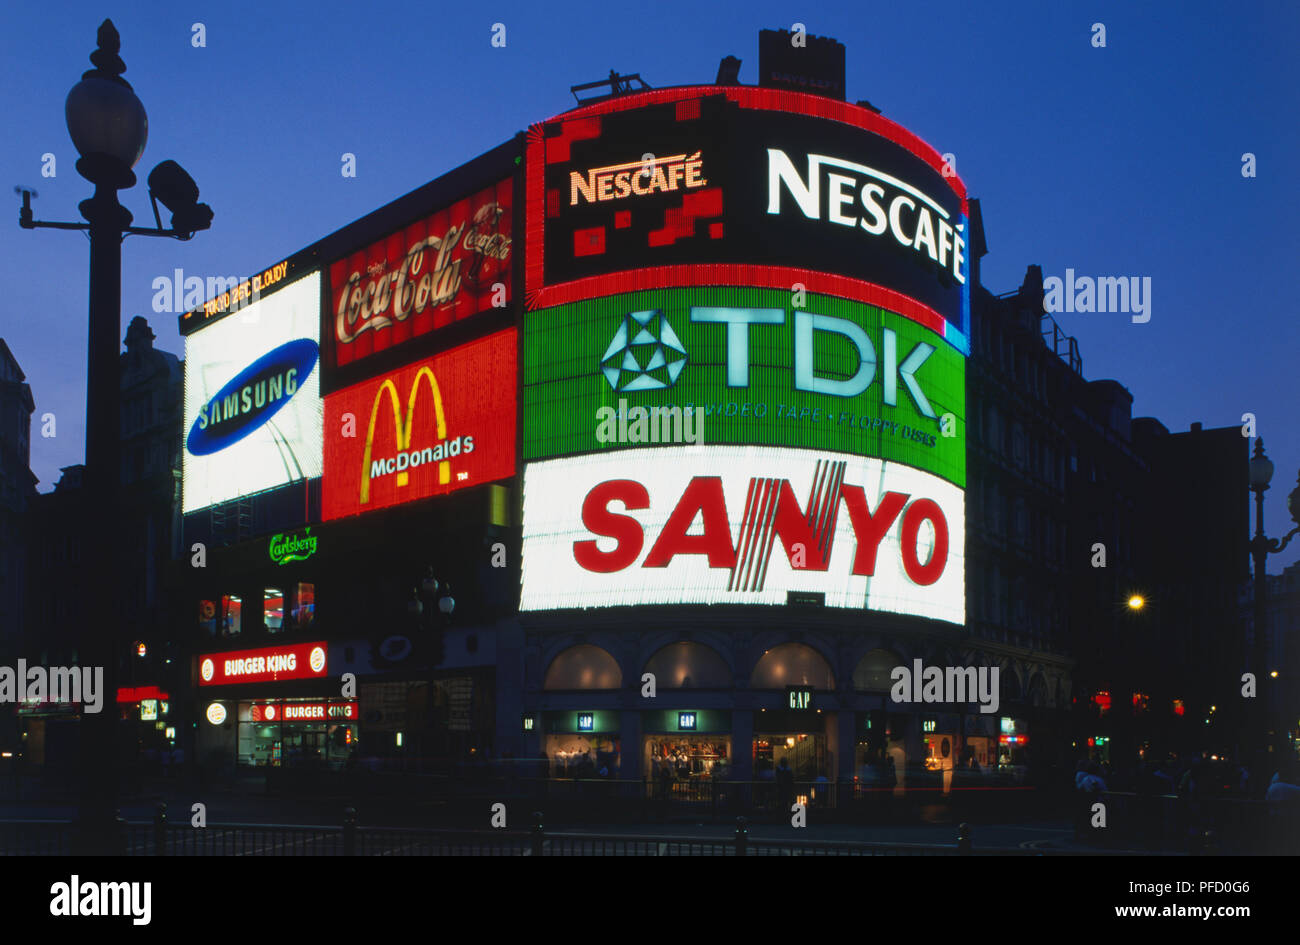 Great Britain, England, London, Picadilly Circus, large neon signs at night. - Stock Image